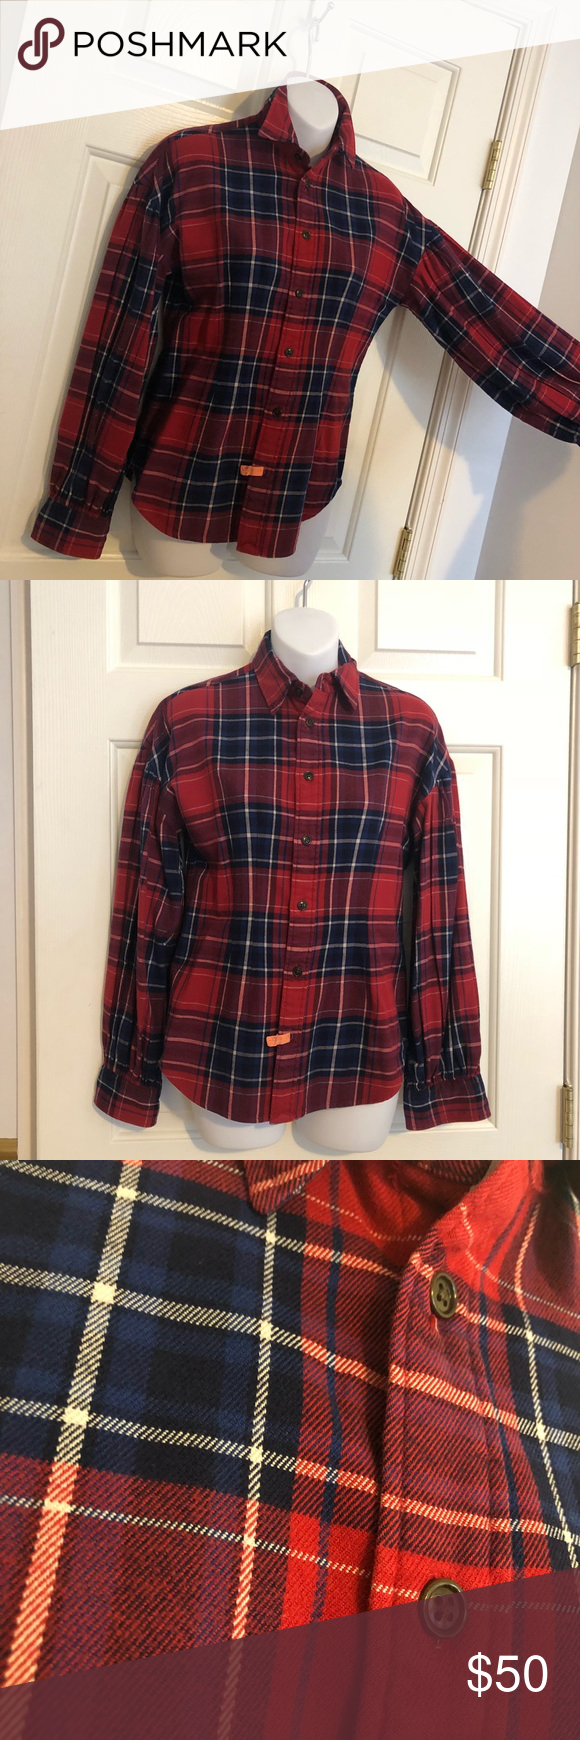 Rugby Ralph Lauren Flannel Shirt This Shirt Isn T Just Your Typical Flannel Button Down It Is By Ralph Lauren Rugby And Ha Flannel Shirt Shirts Clothes Design